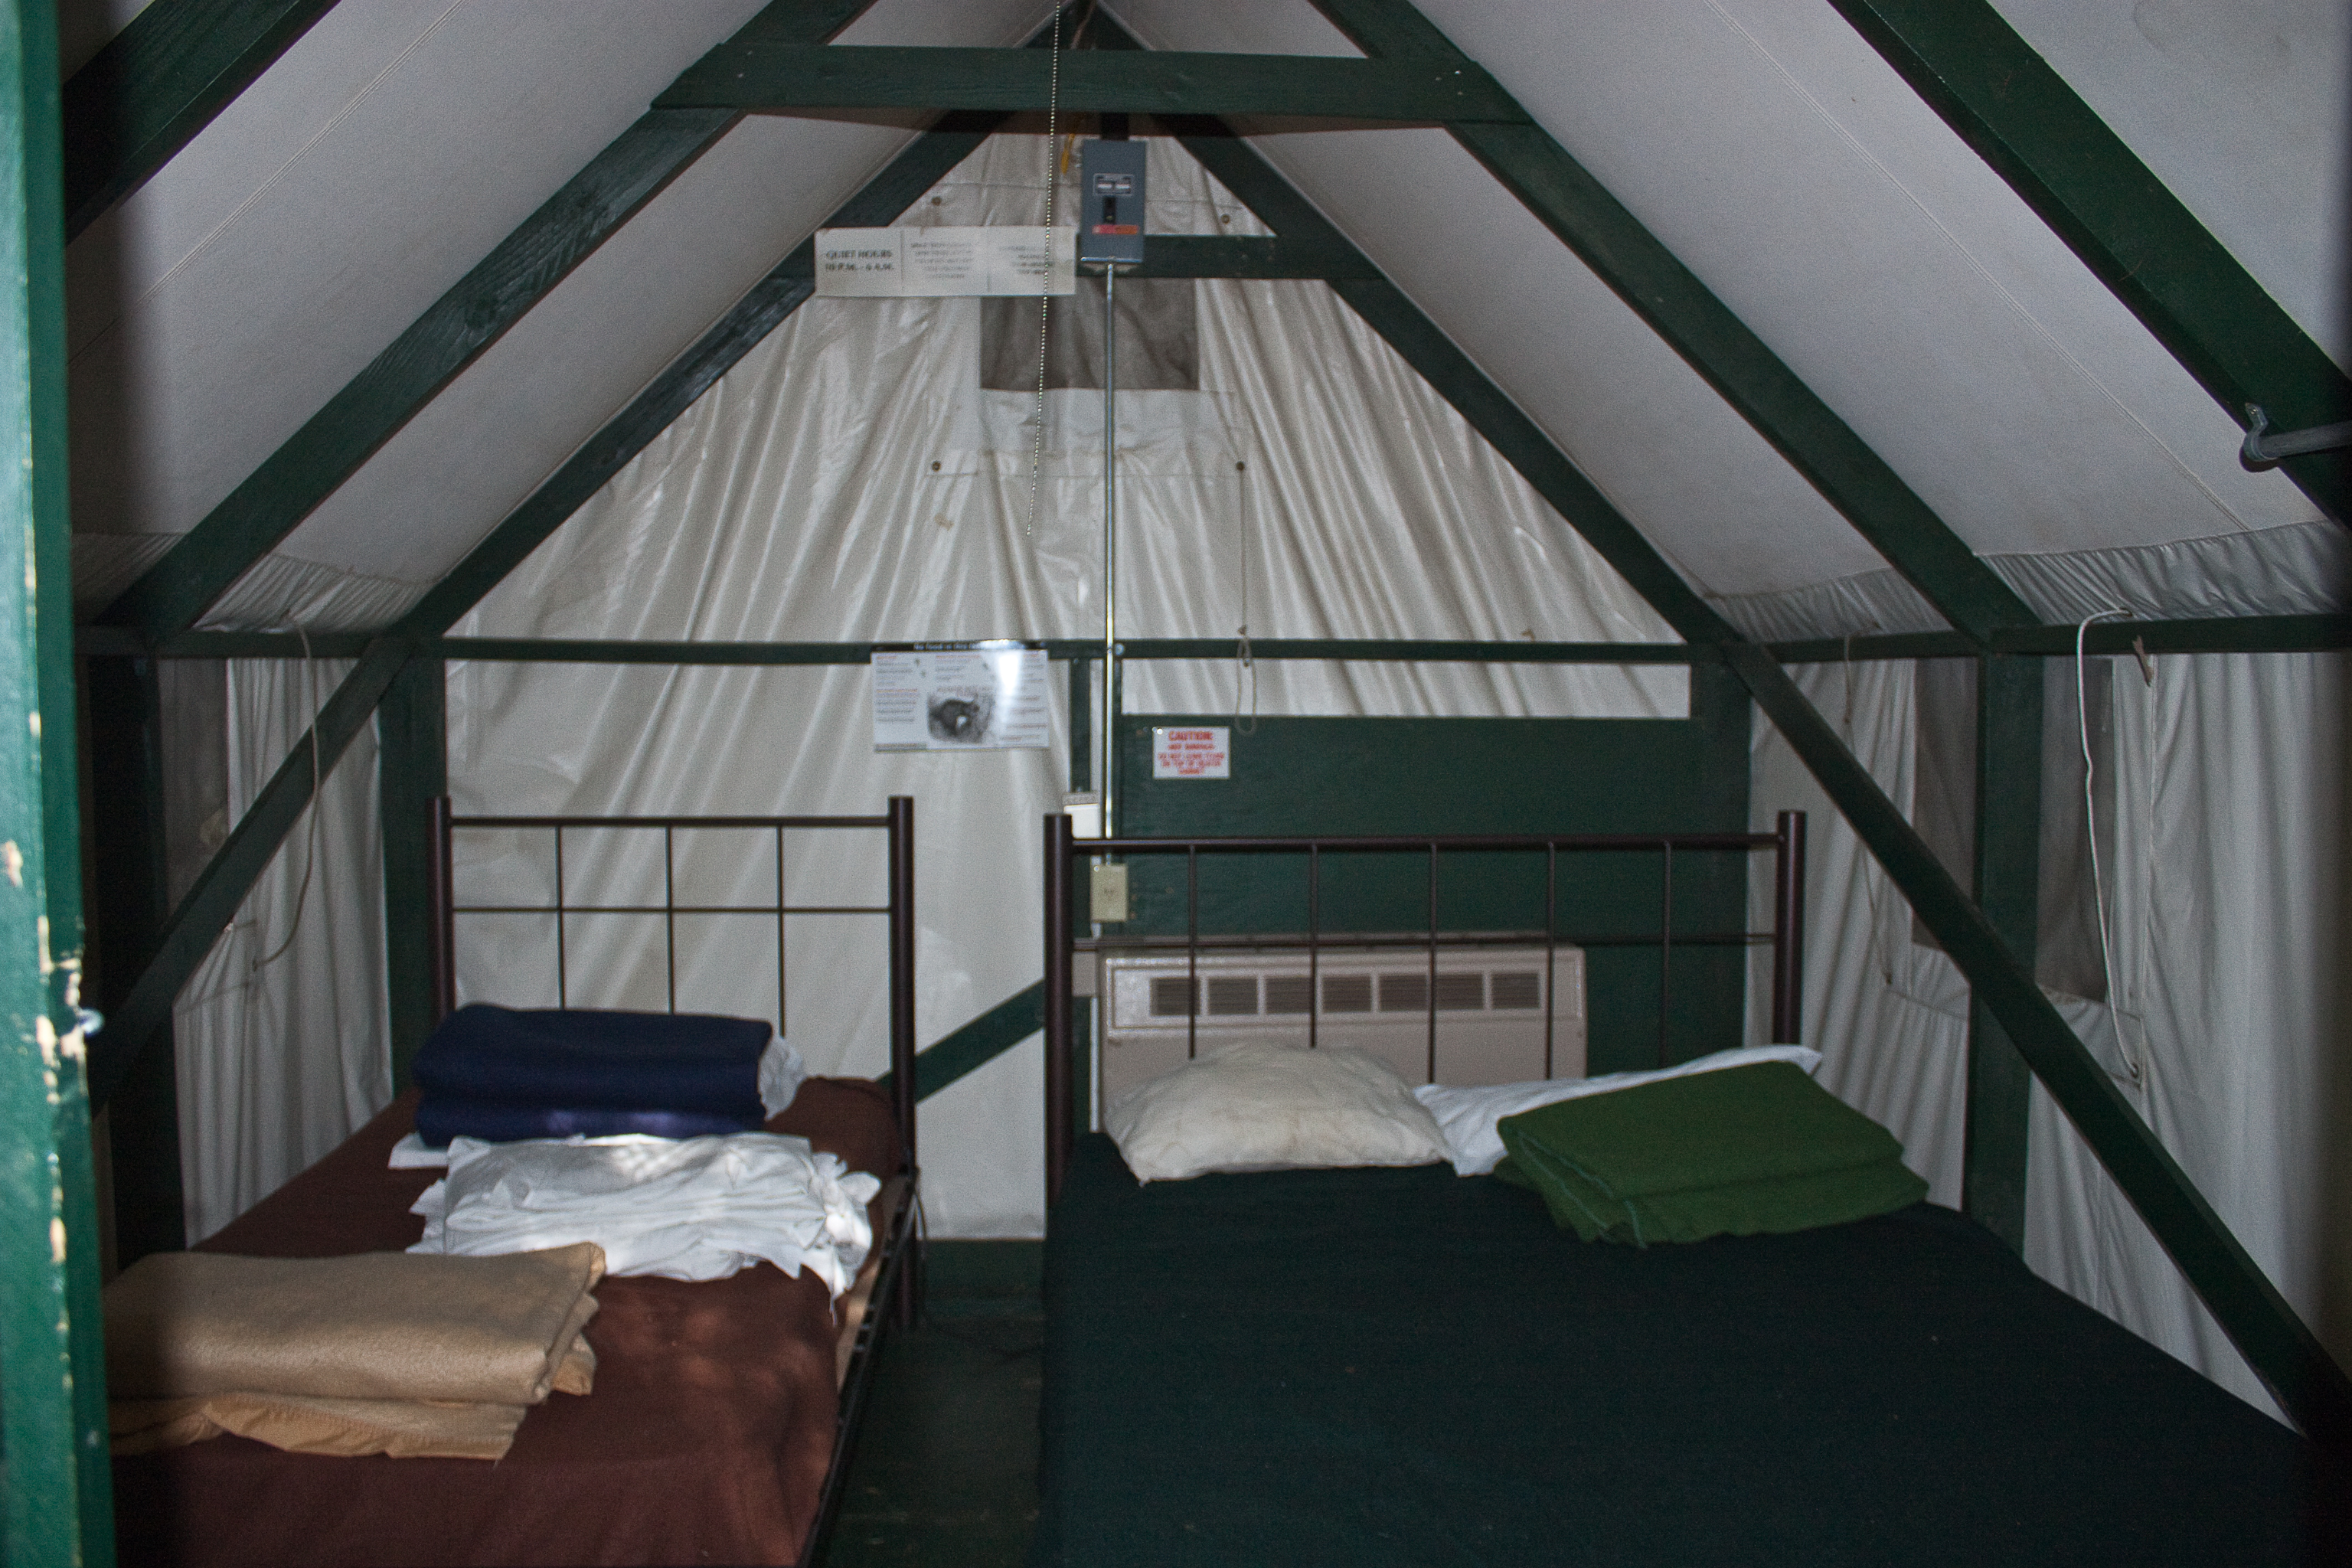 FileCurry-Village-Yosemite-tent-cabin-interior.jpg & File:Curry-Village-Yosemite-tent-cabin-interior.jpg - Wikimedia ...